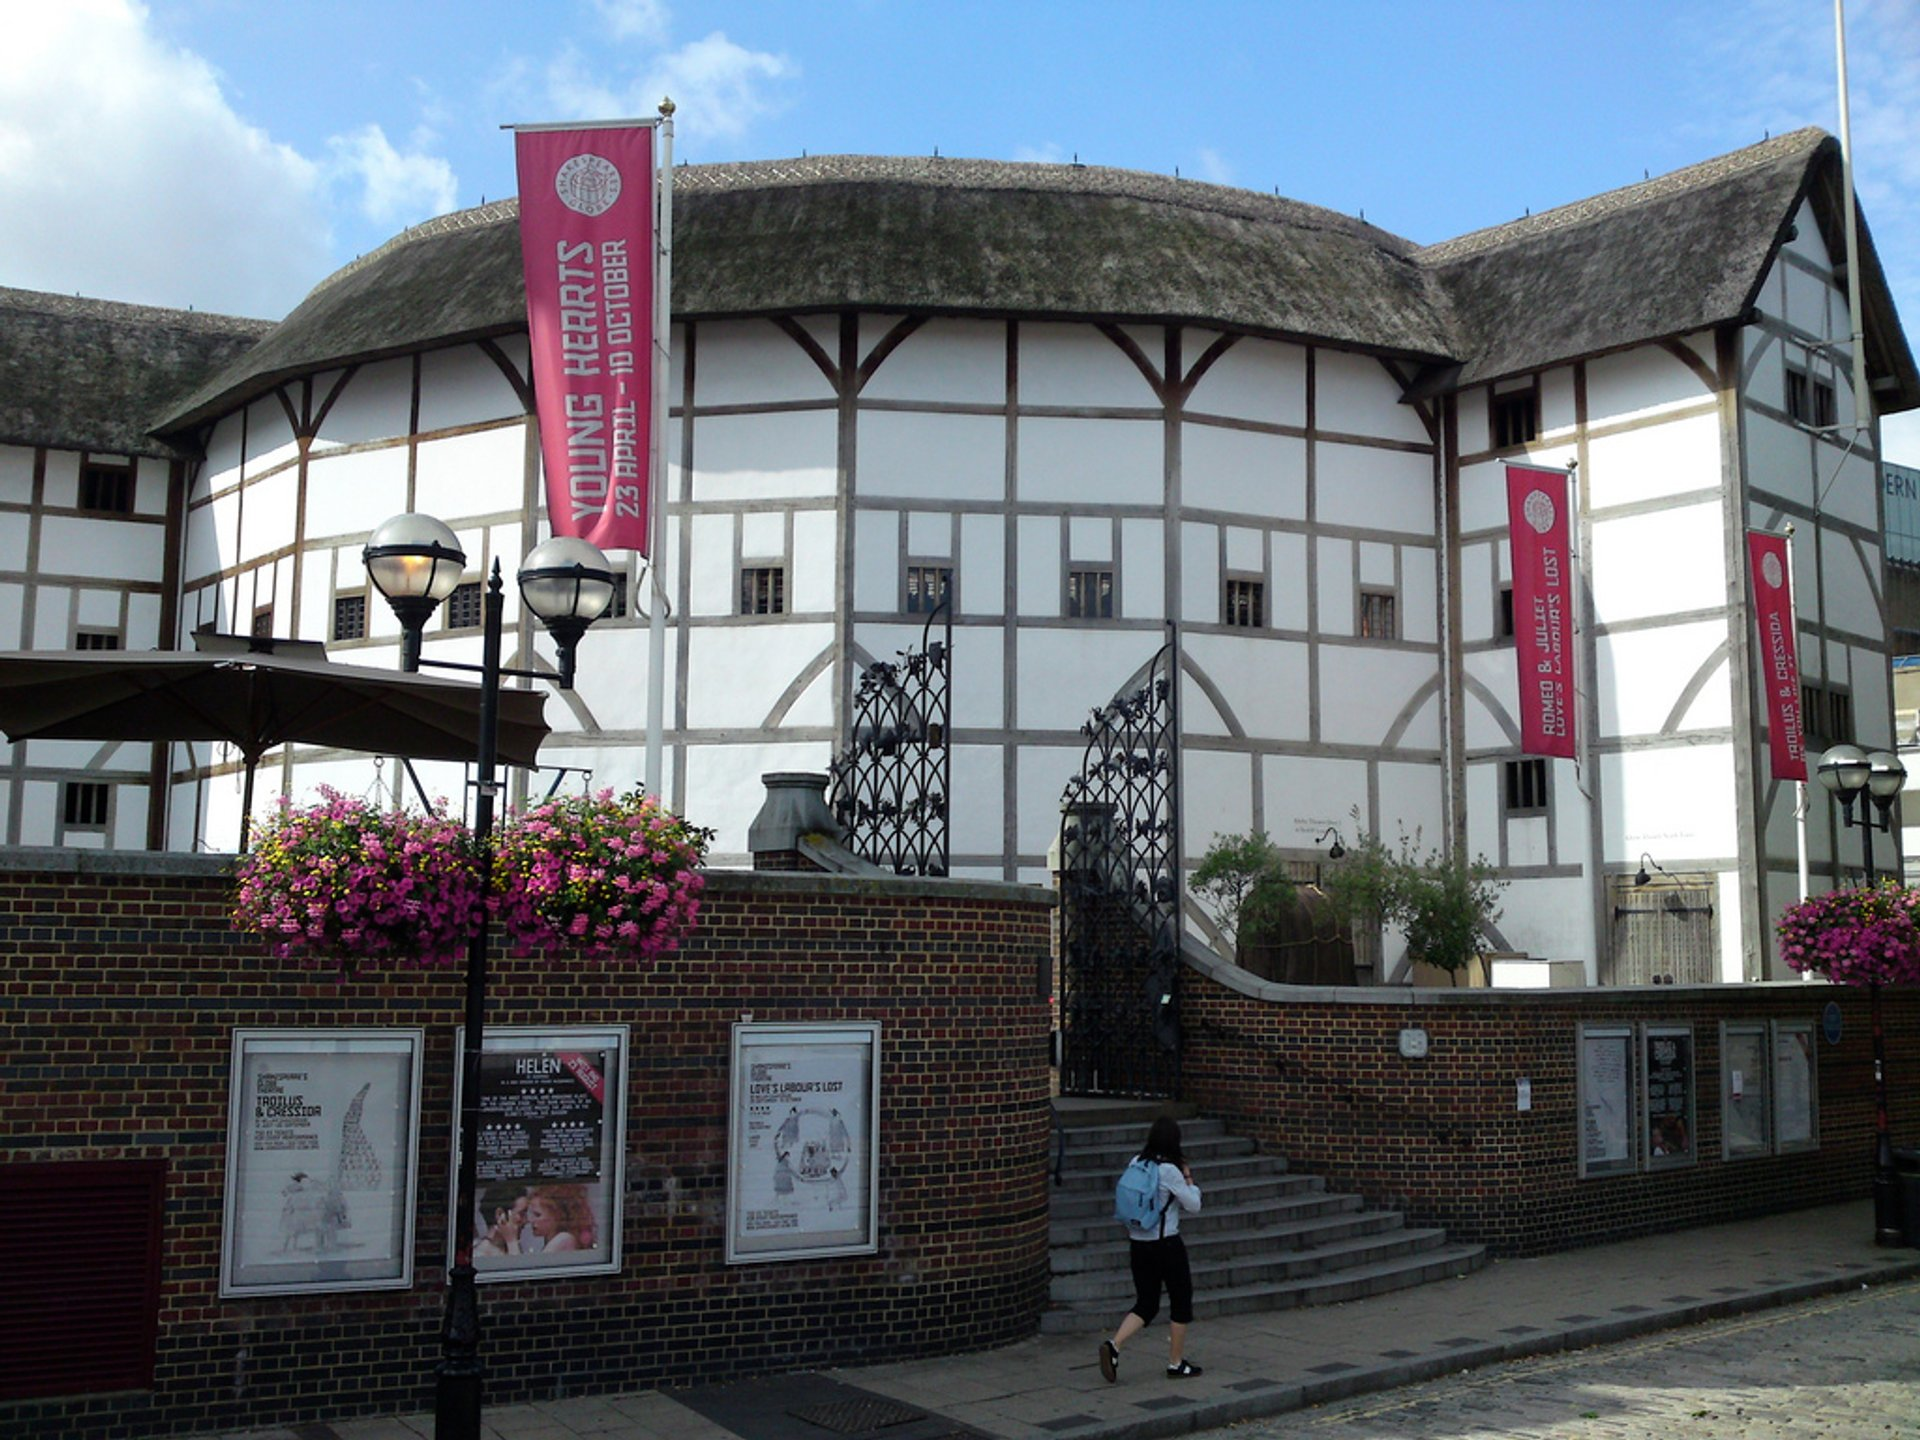 Globe Theatre in London 2019 - Best Time